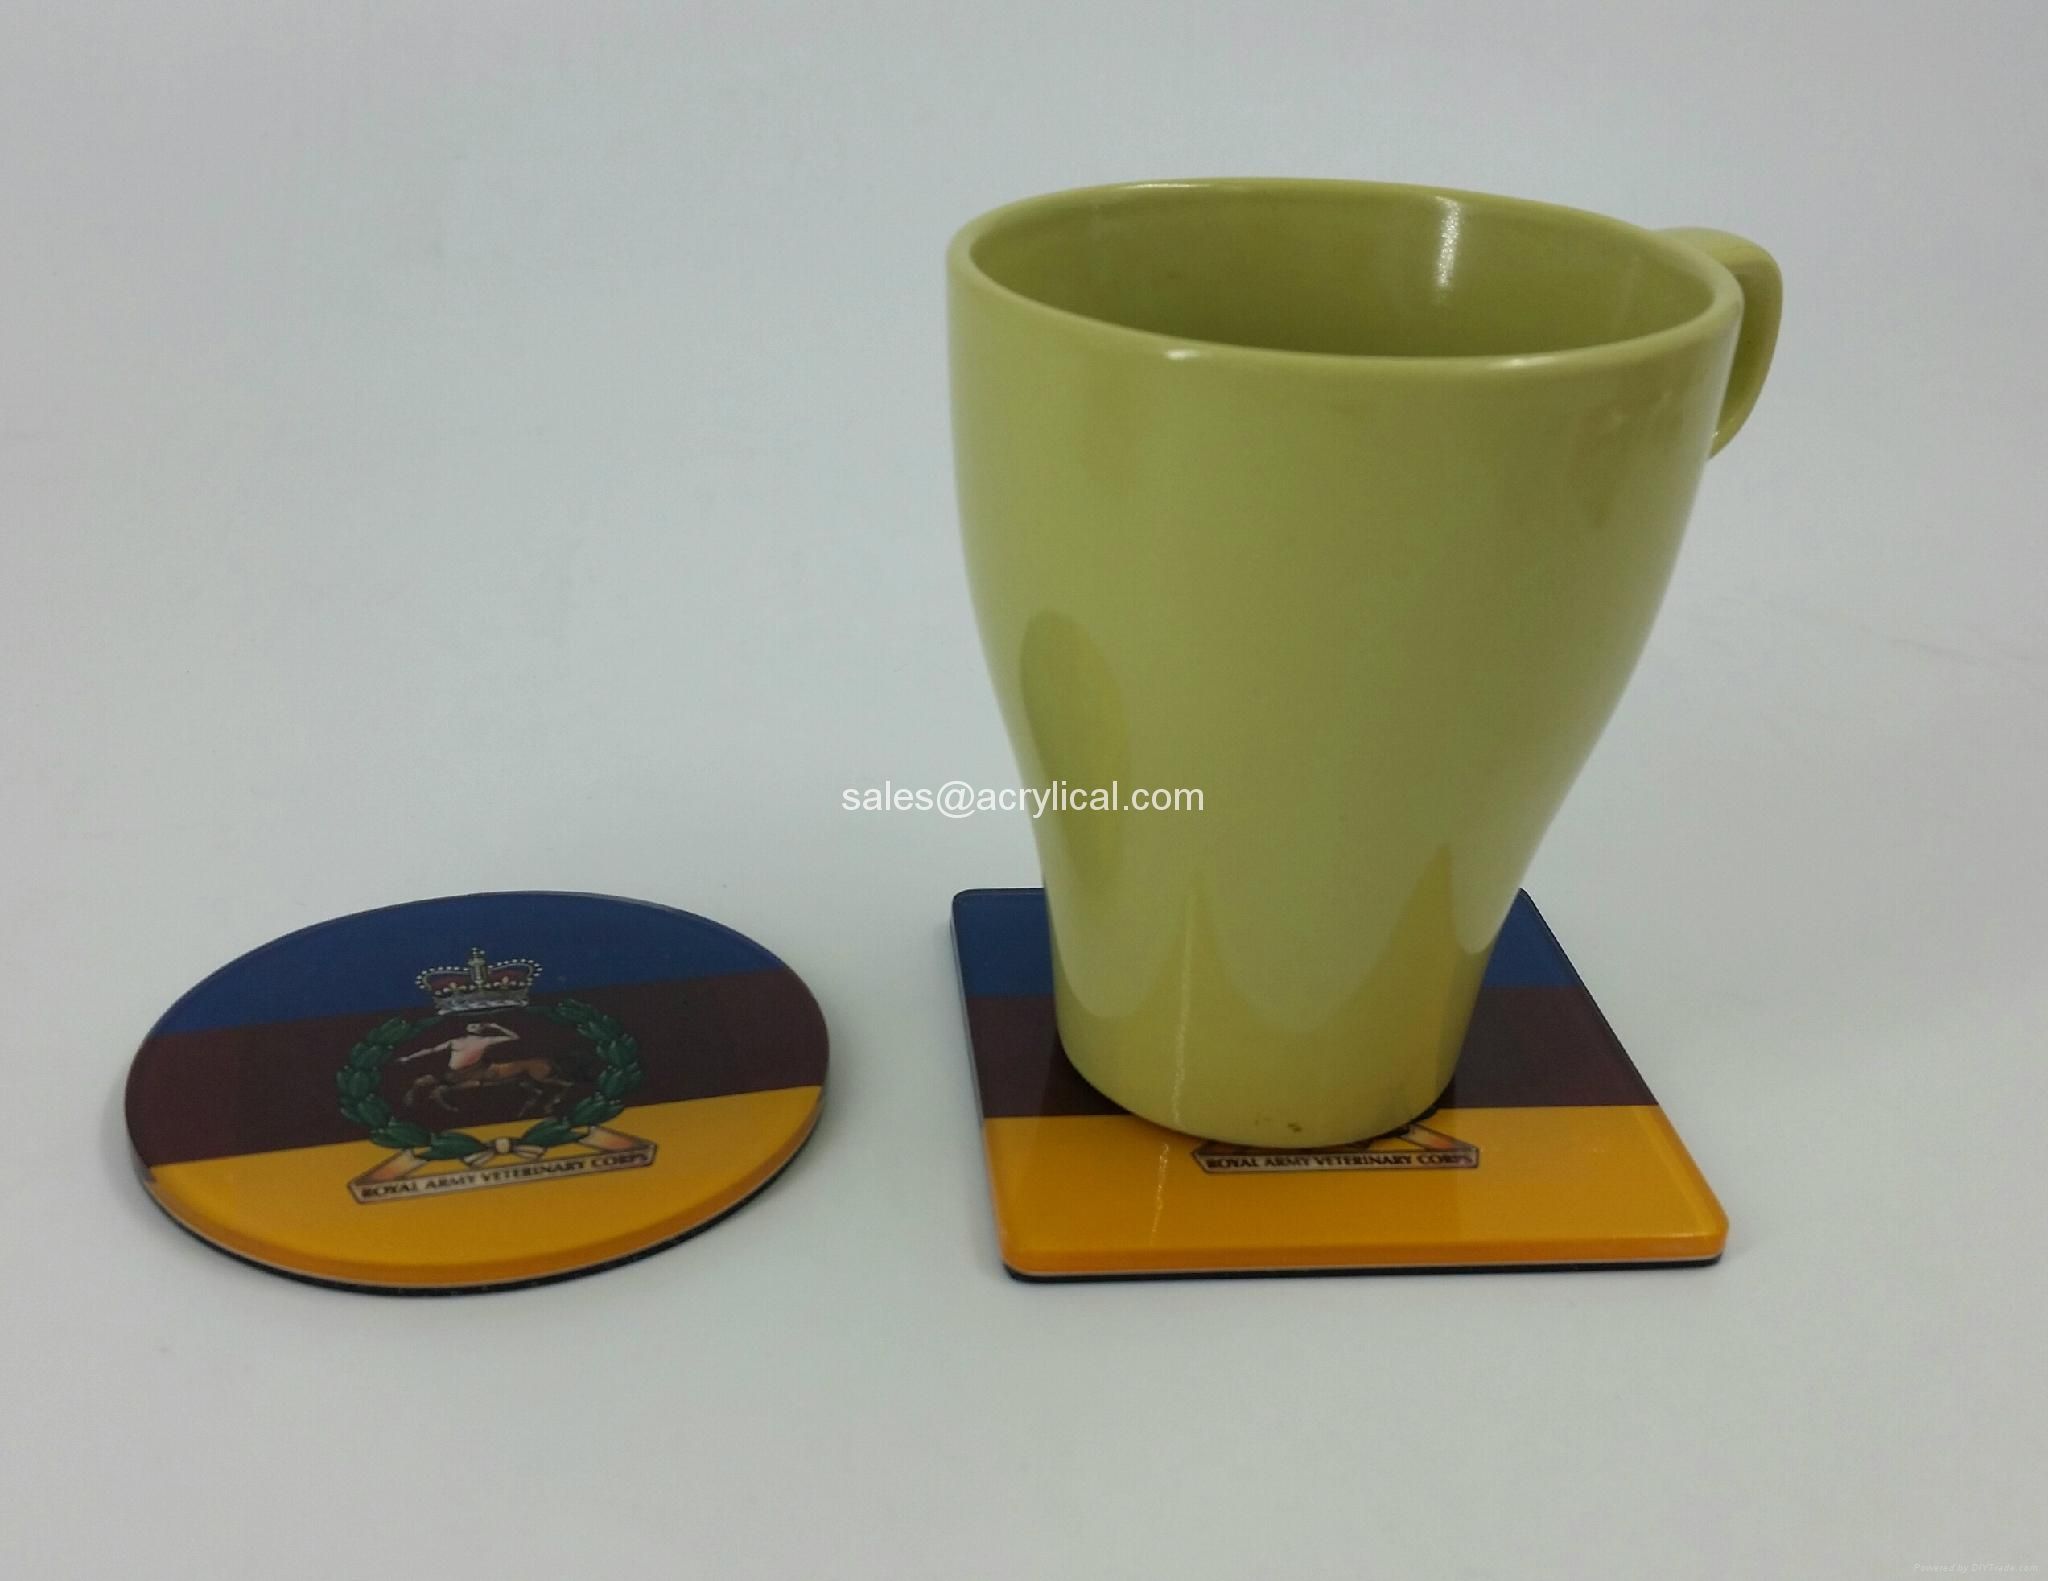 promotion giftscorporation gifts -acrylic coasters